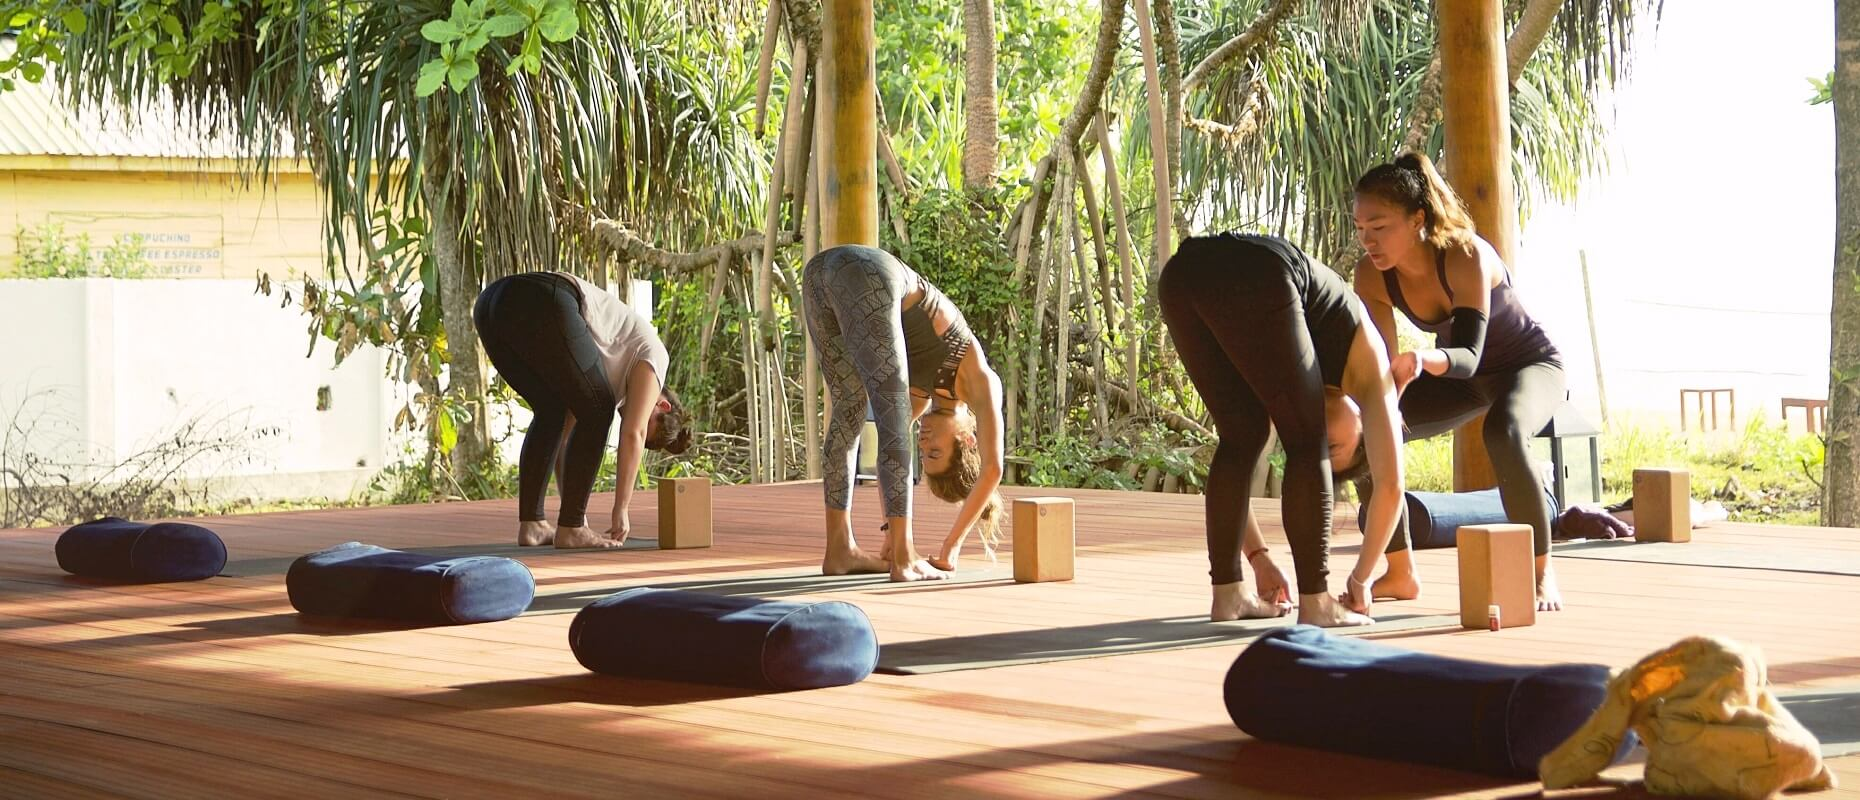 Yoga Teacher Training in Chiang Mai, Thailand